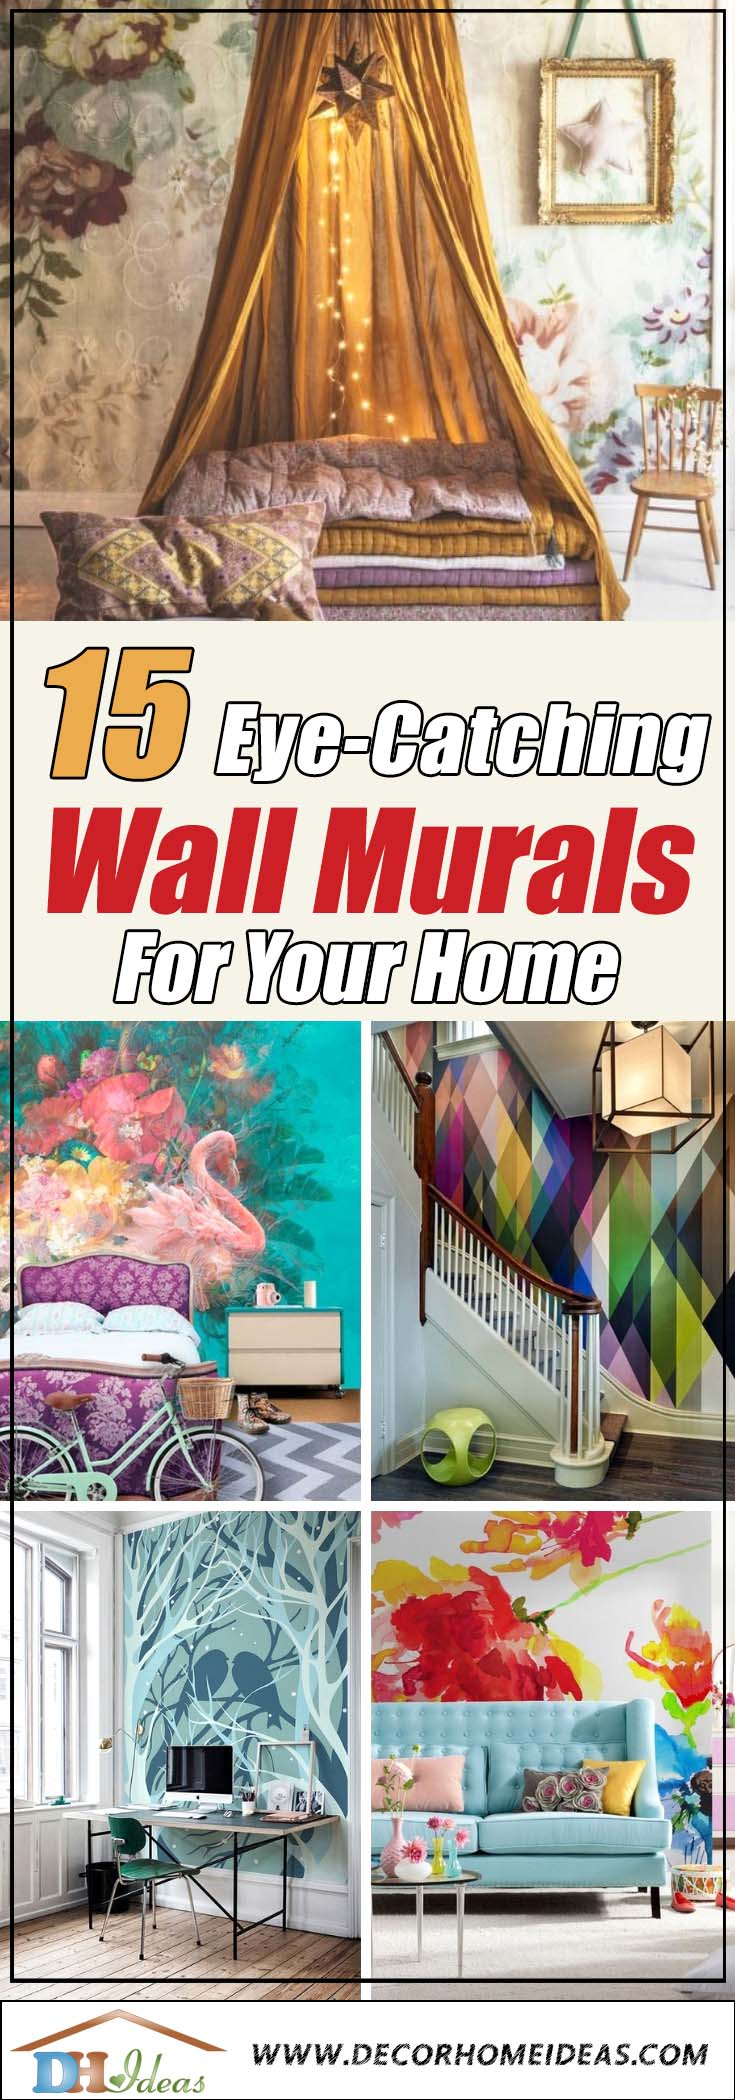 15 Eye Catching Modern Murals for Interior Home Decor | Great wall decoration with wall stickers and murals for interior design #mural #sticker #painting #homedecor #walldecor #decoratingideas #interiordesign #decorhomeideas